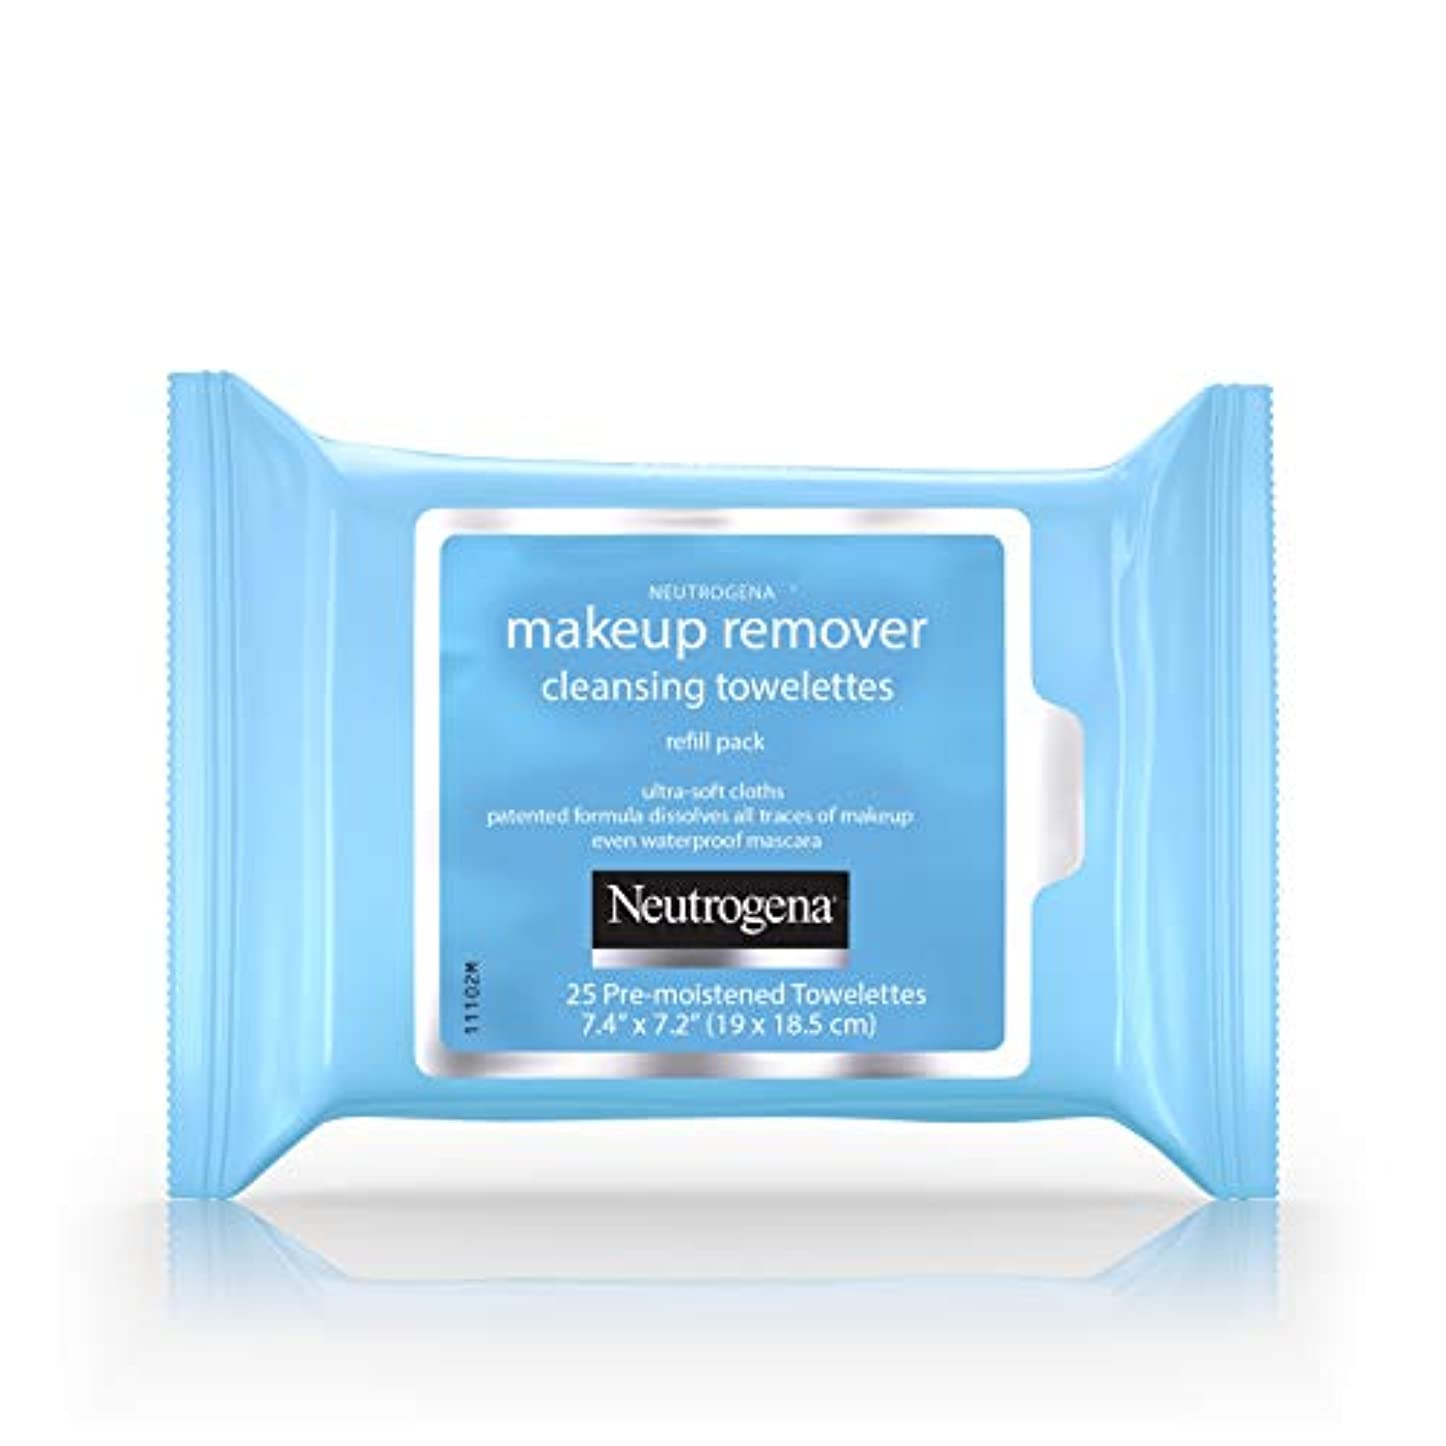 エスカレーター超えるスキルNeutrogena Make-up Remover Cleansing Towelettes Refill Pack 25 Pc (並行輸入品)